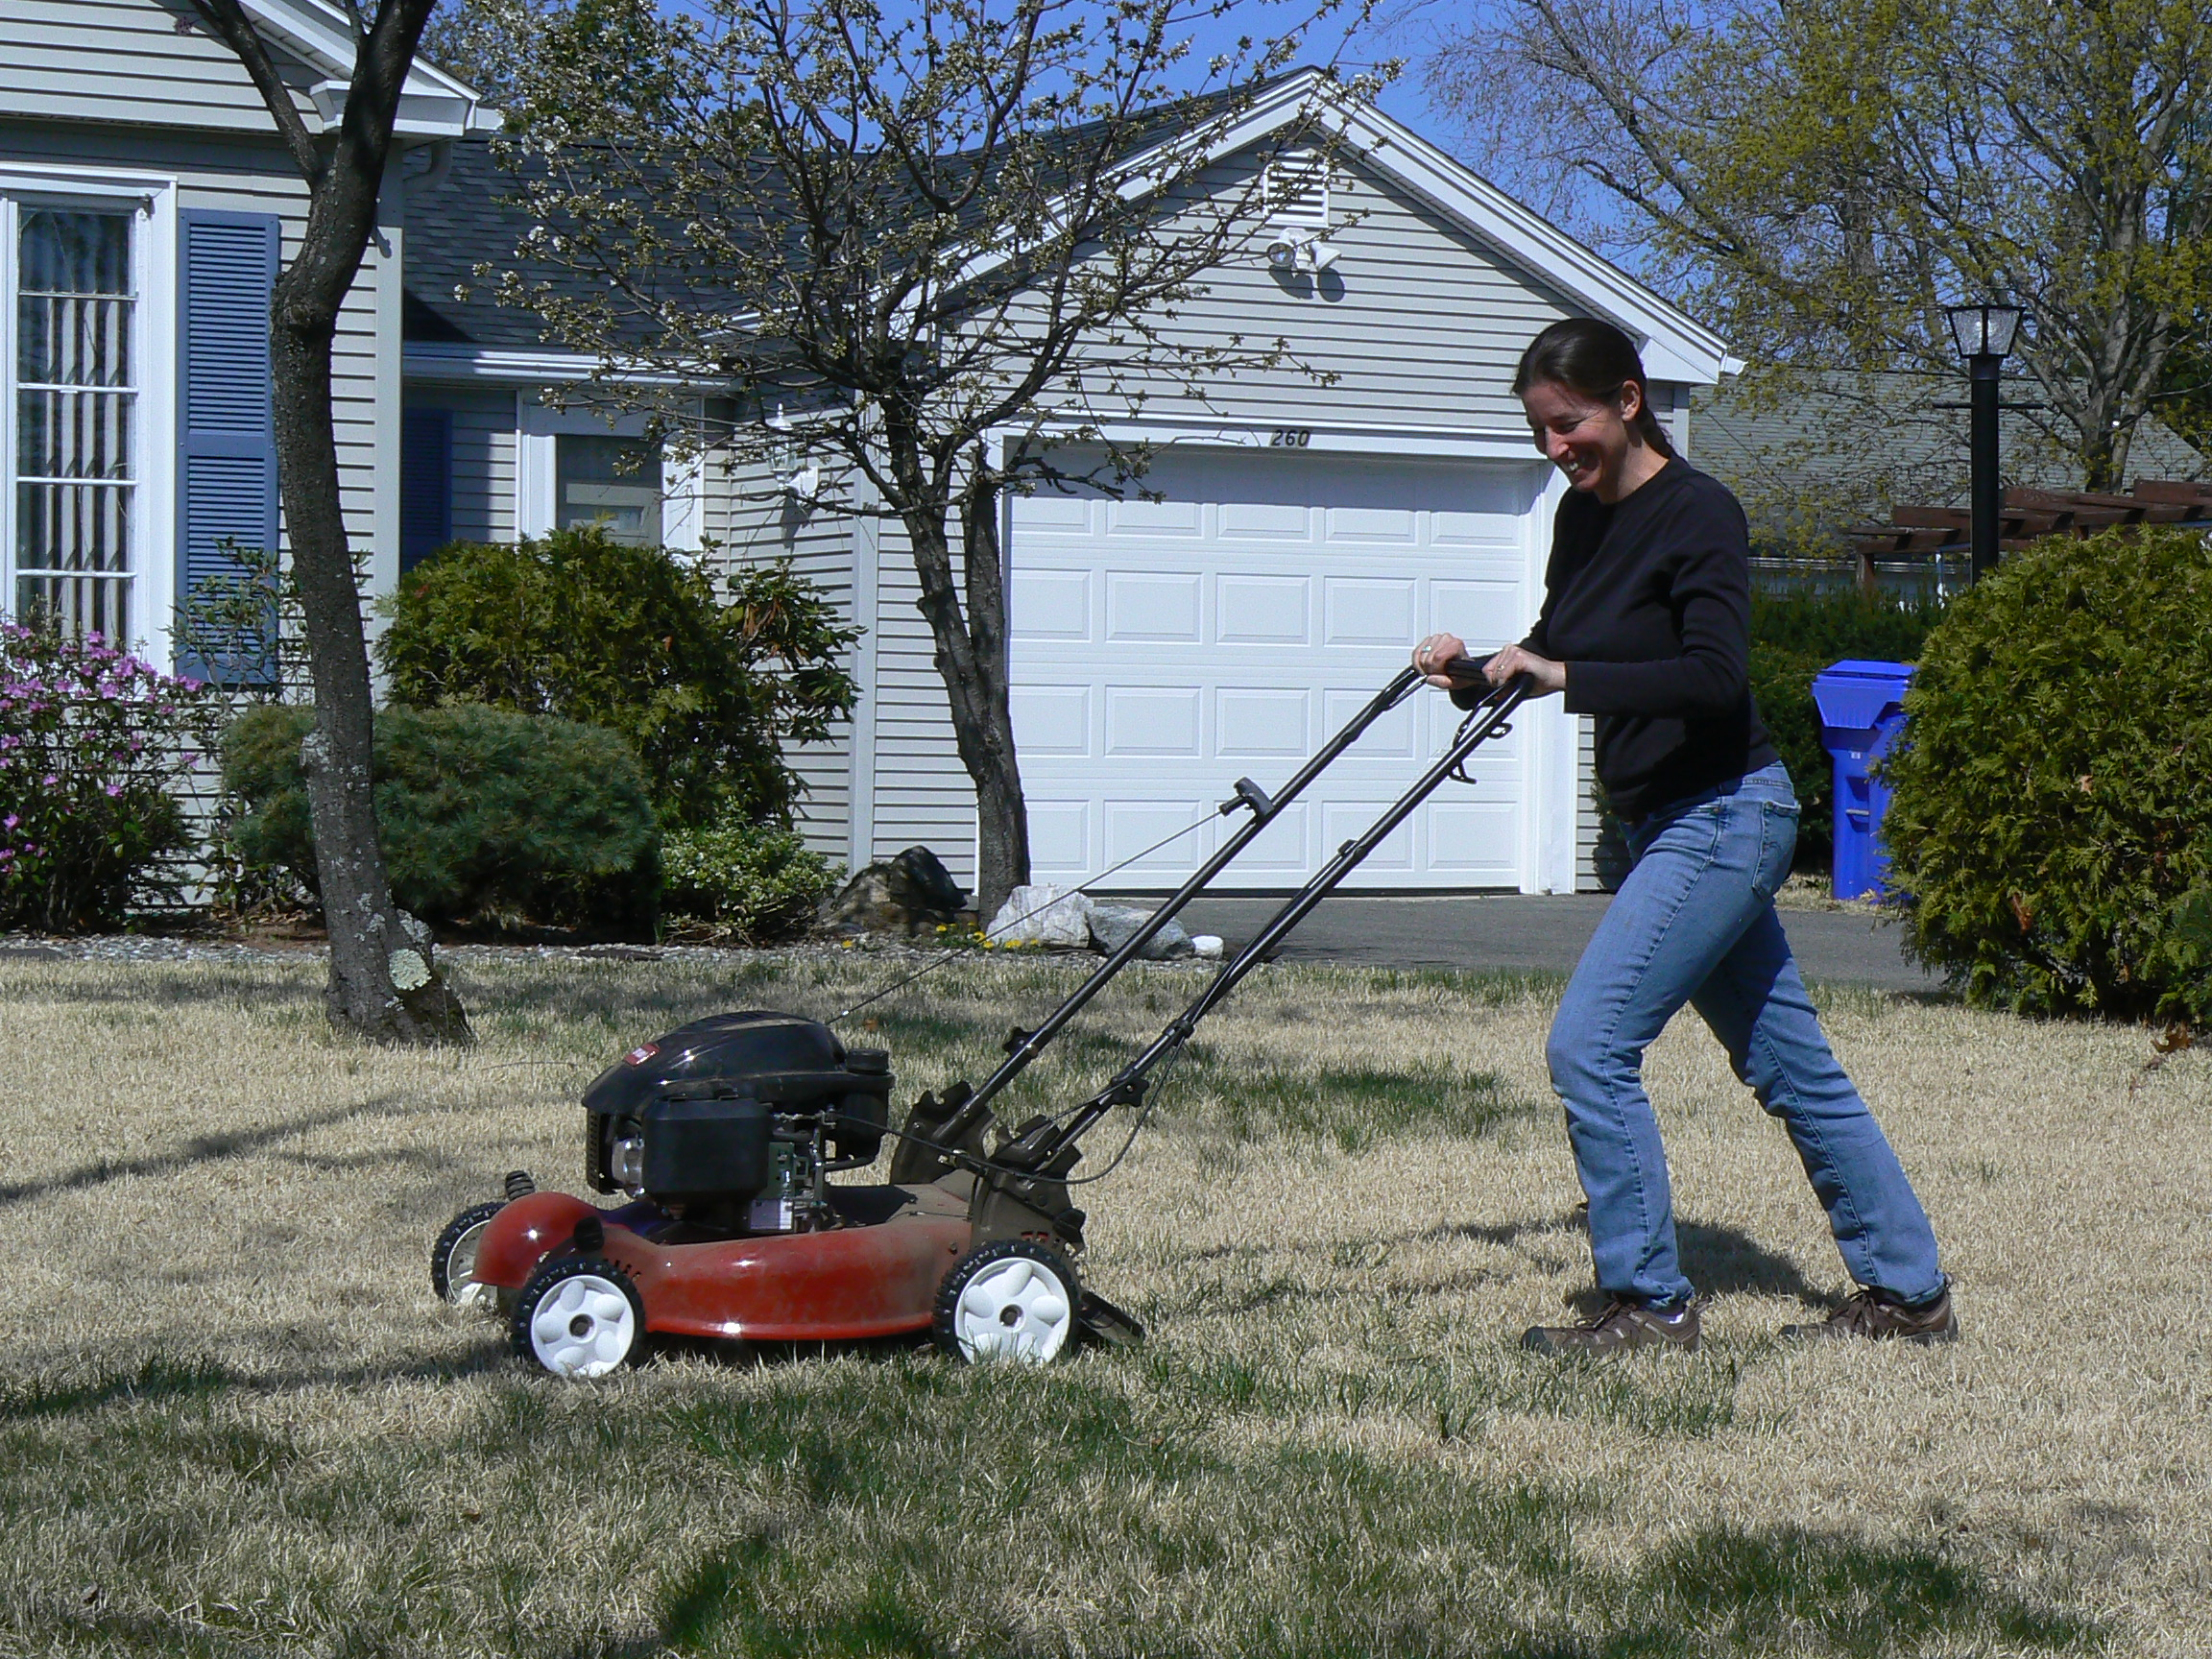 A picture of a lady pushing a power lawn mower over a grassy yard.